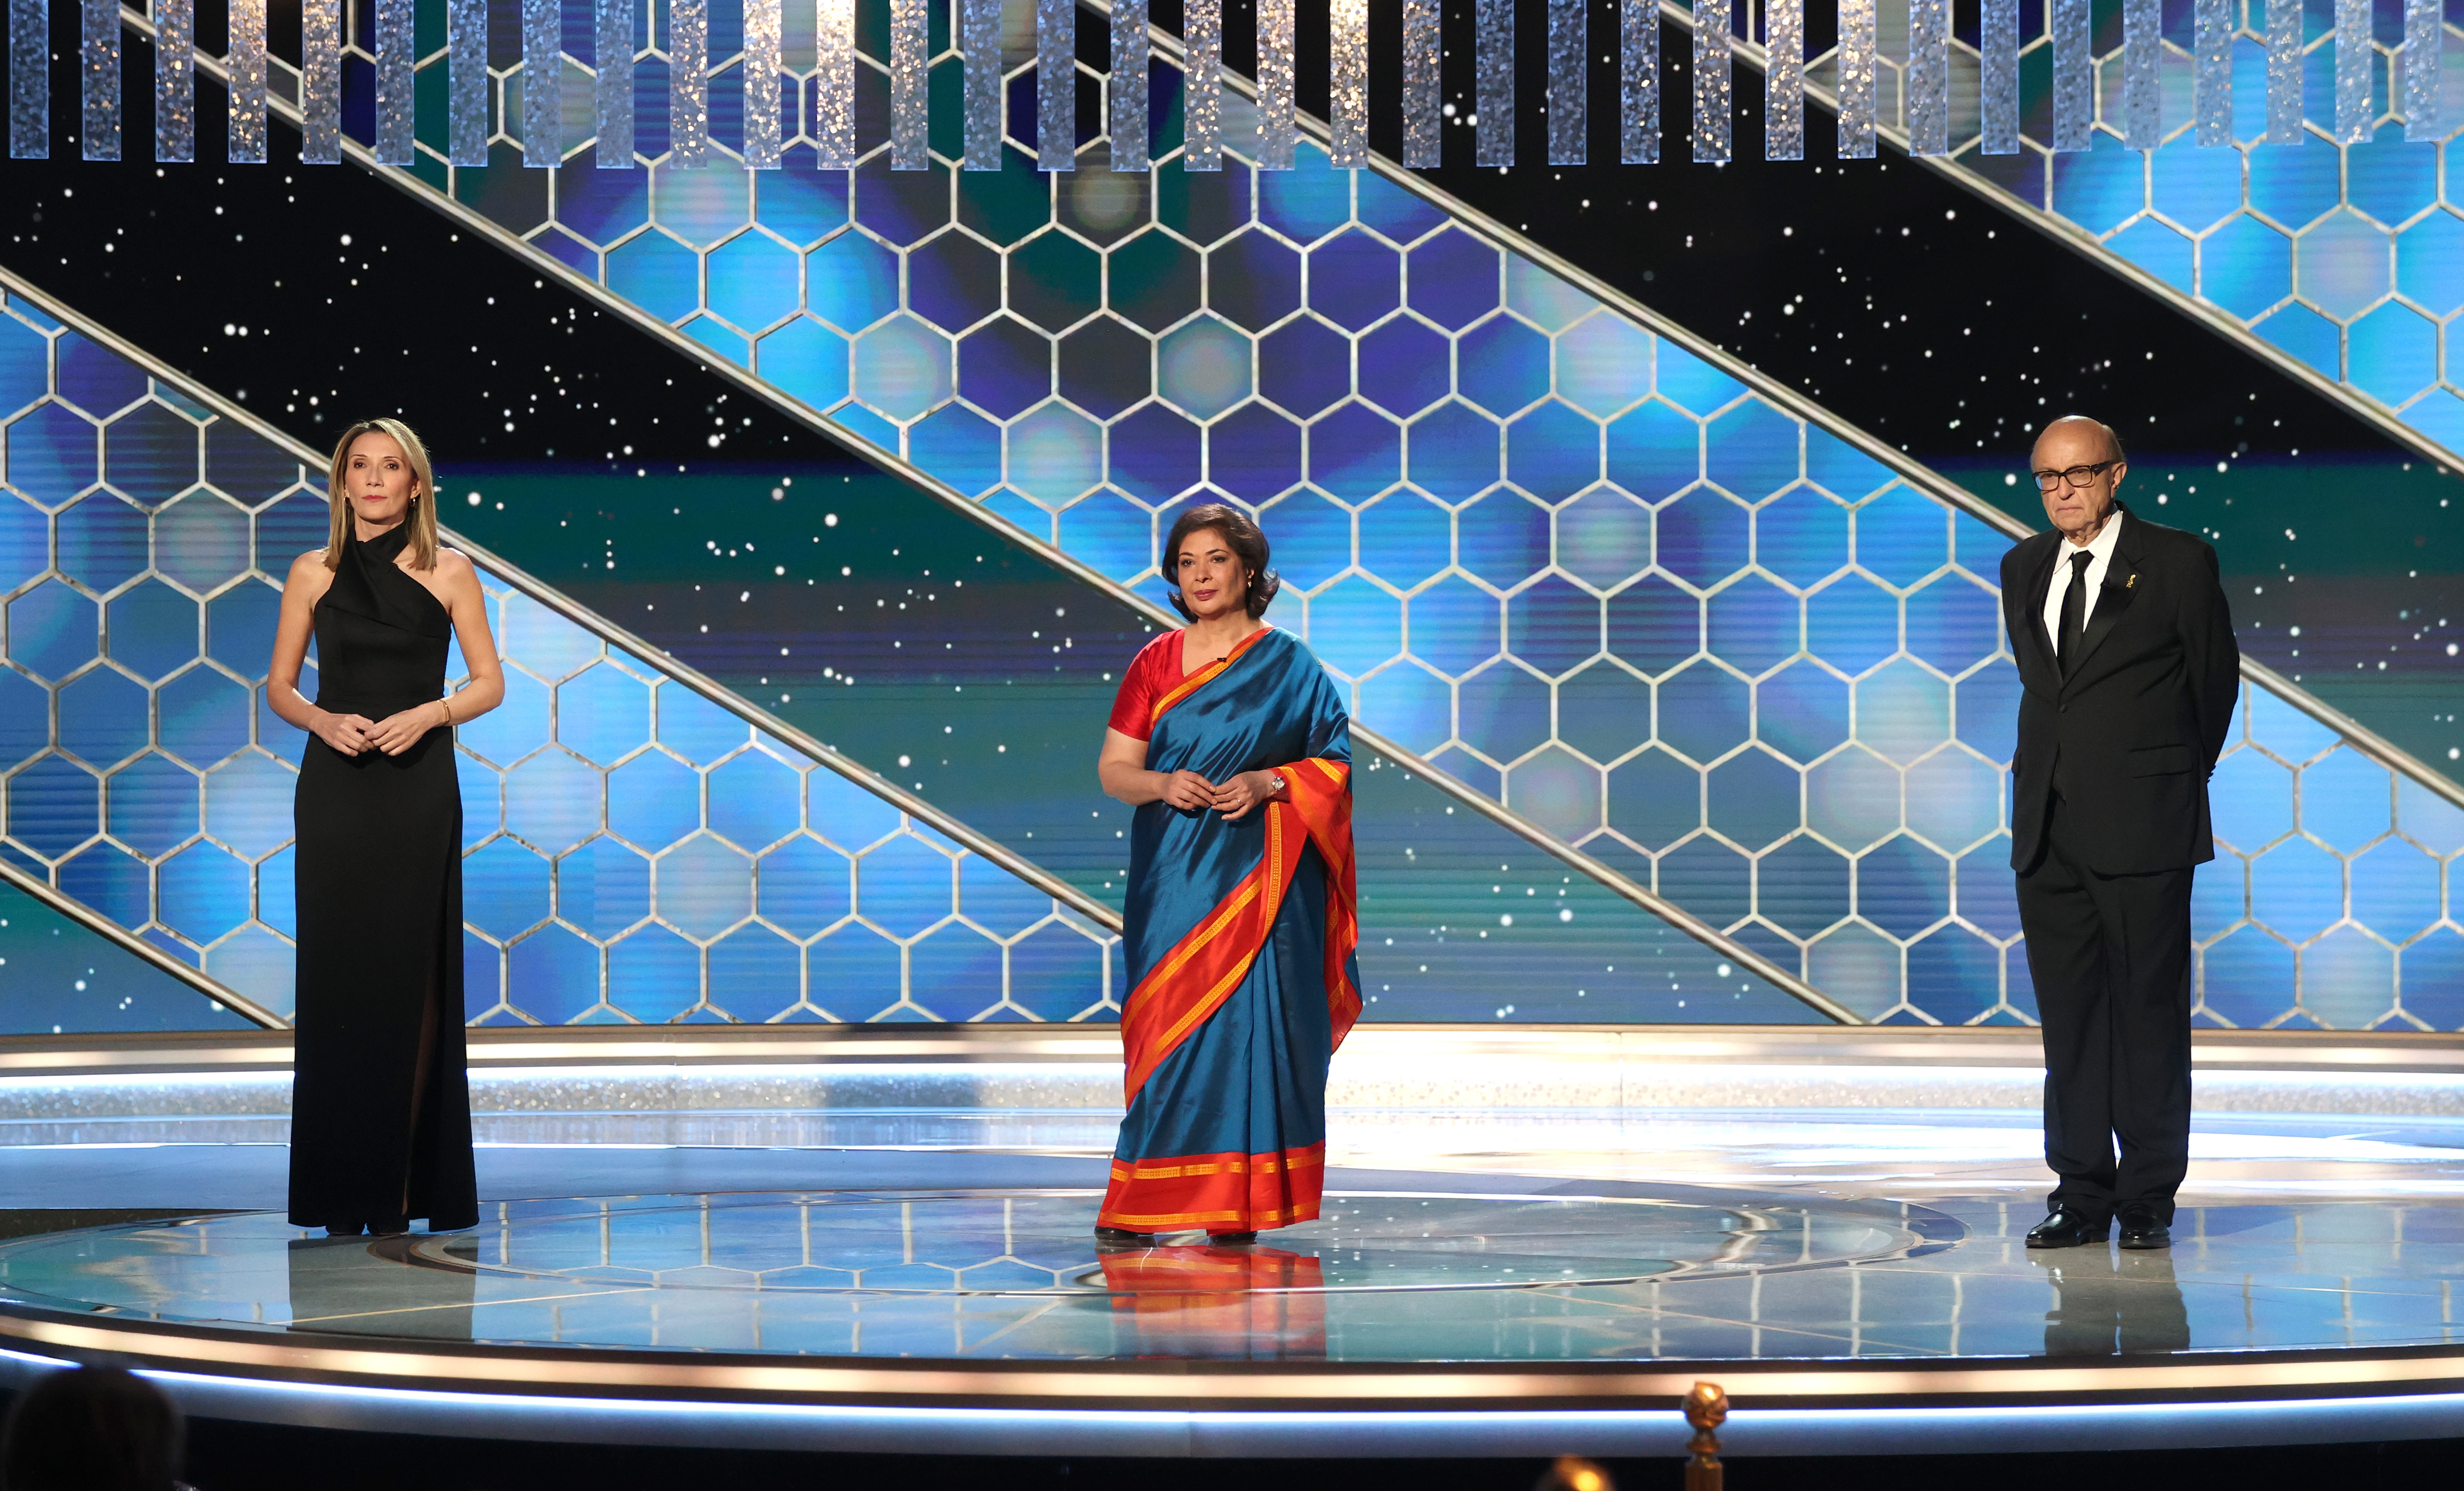 HFPA Vice President Helen Hoehne, HFPA Board Chair Meher Tatna and HFPA President Ali Sar make vague commitments to address the issues within their organization during the Golden Globes broadcast